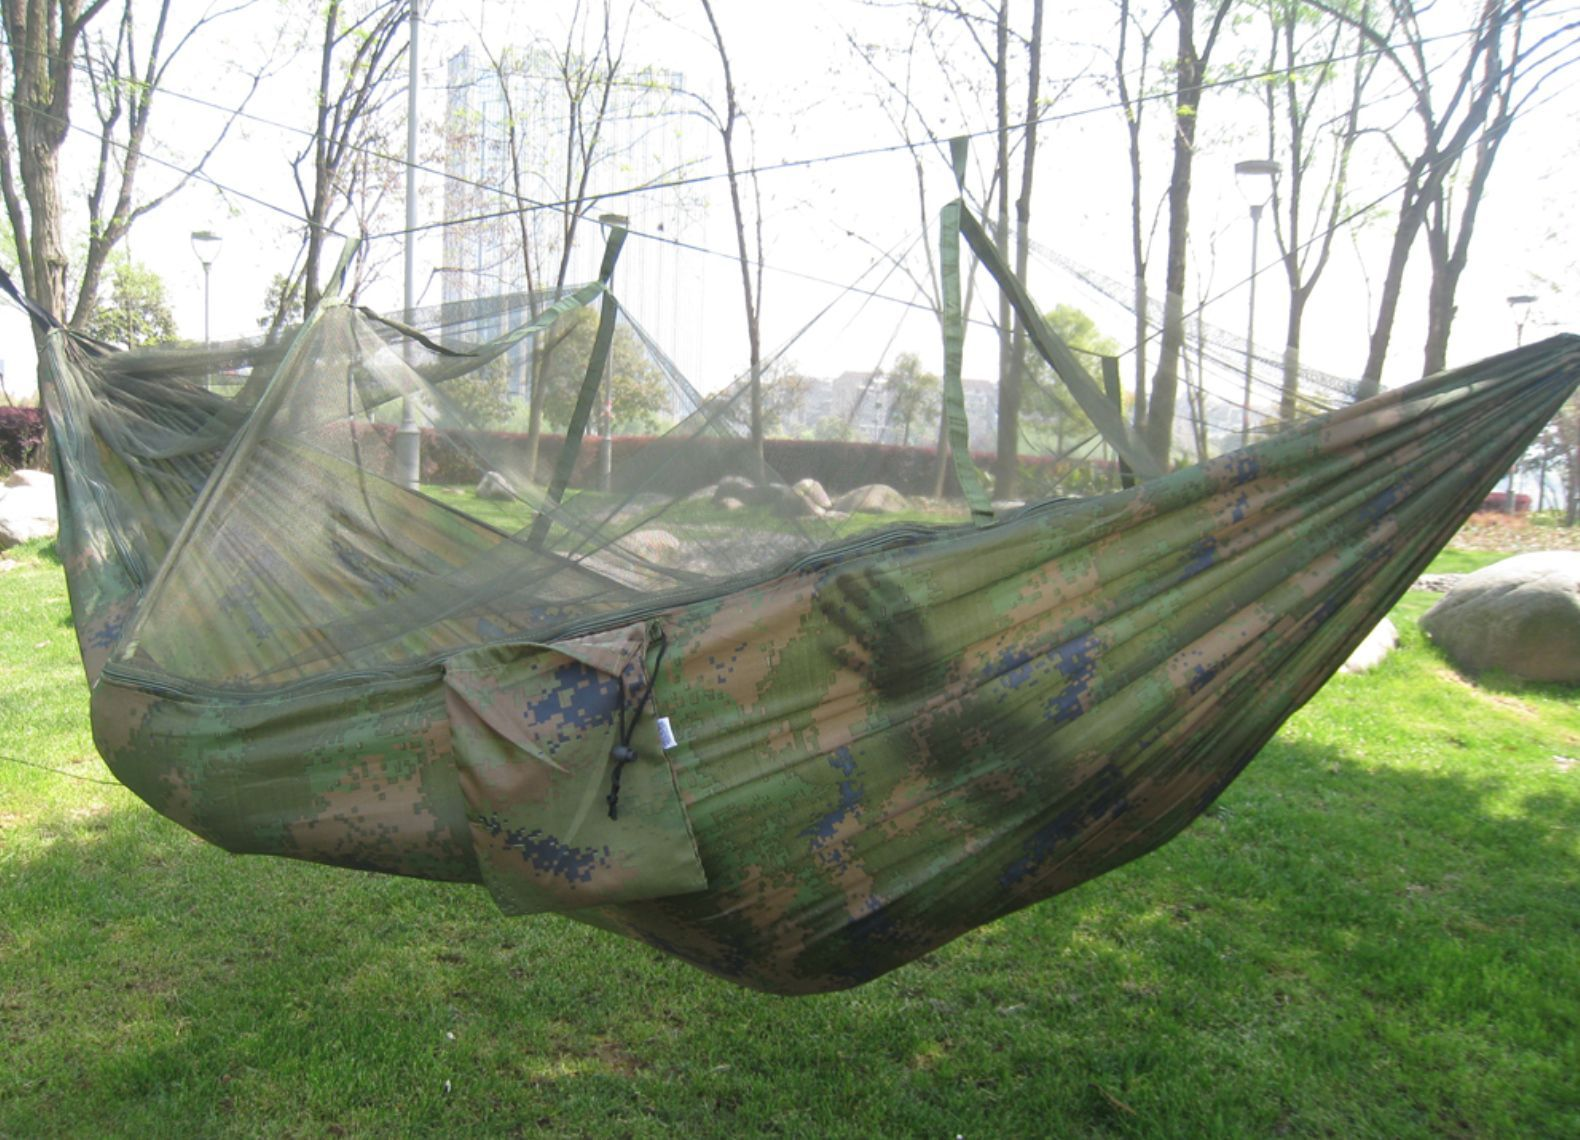 Waterproof parachute fabric tactical hammock mosquito net